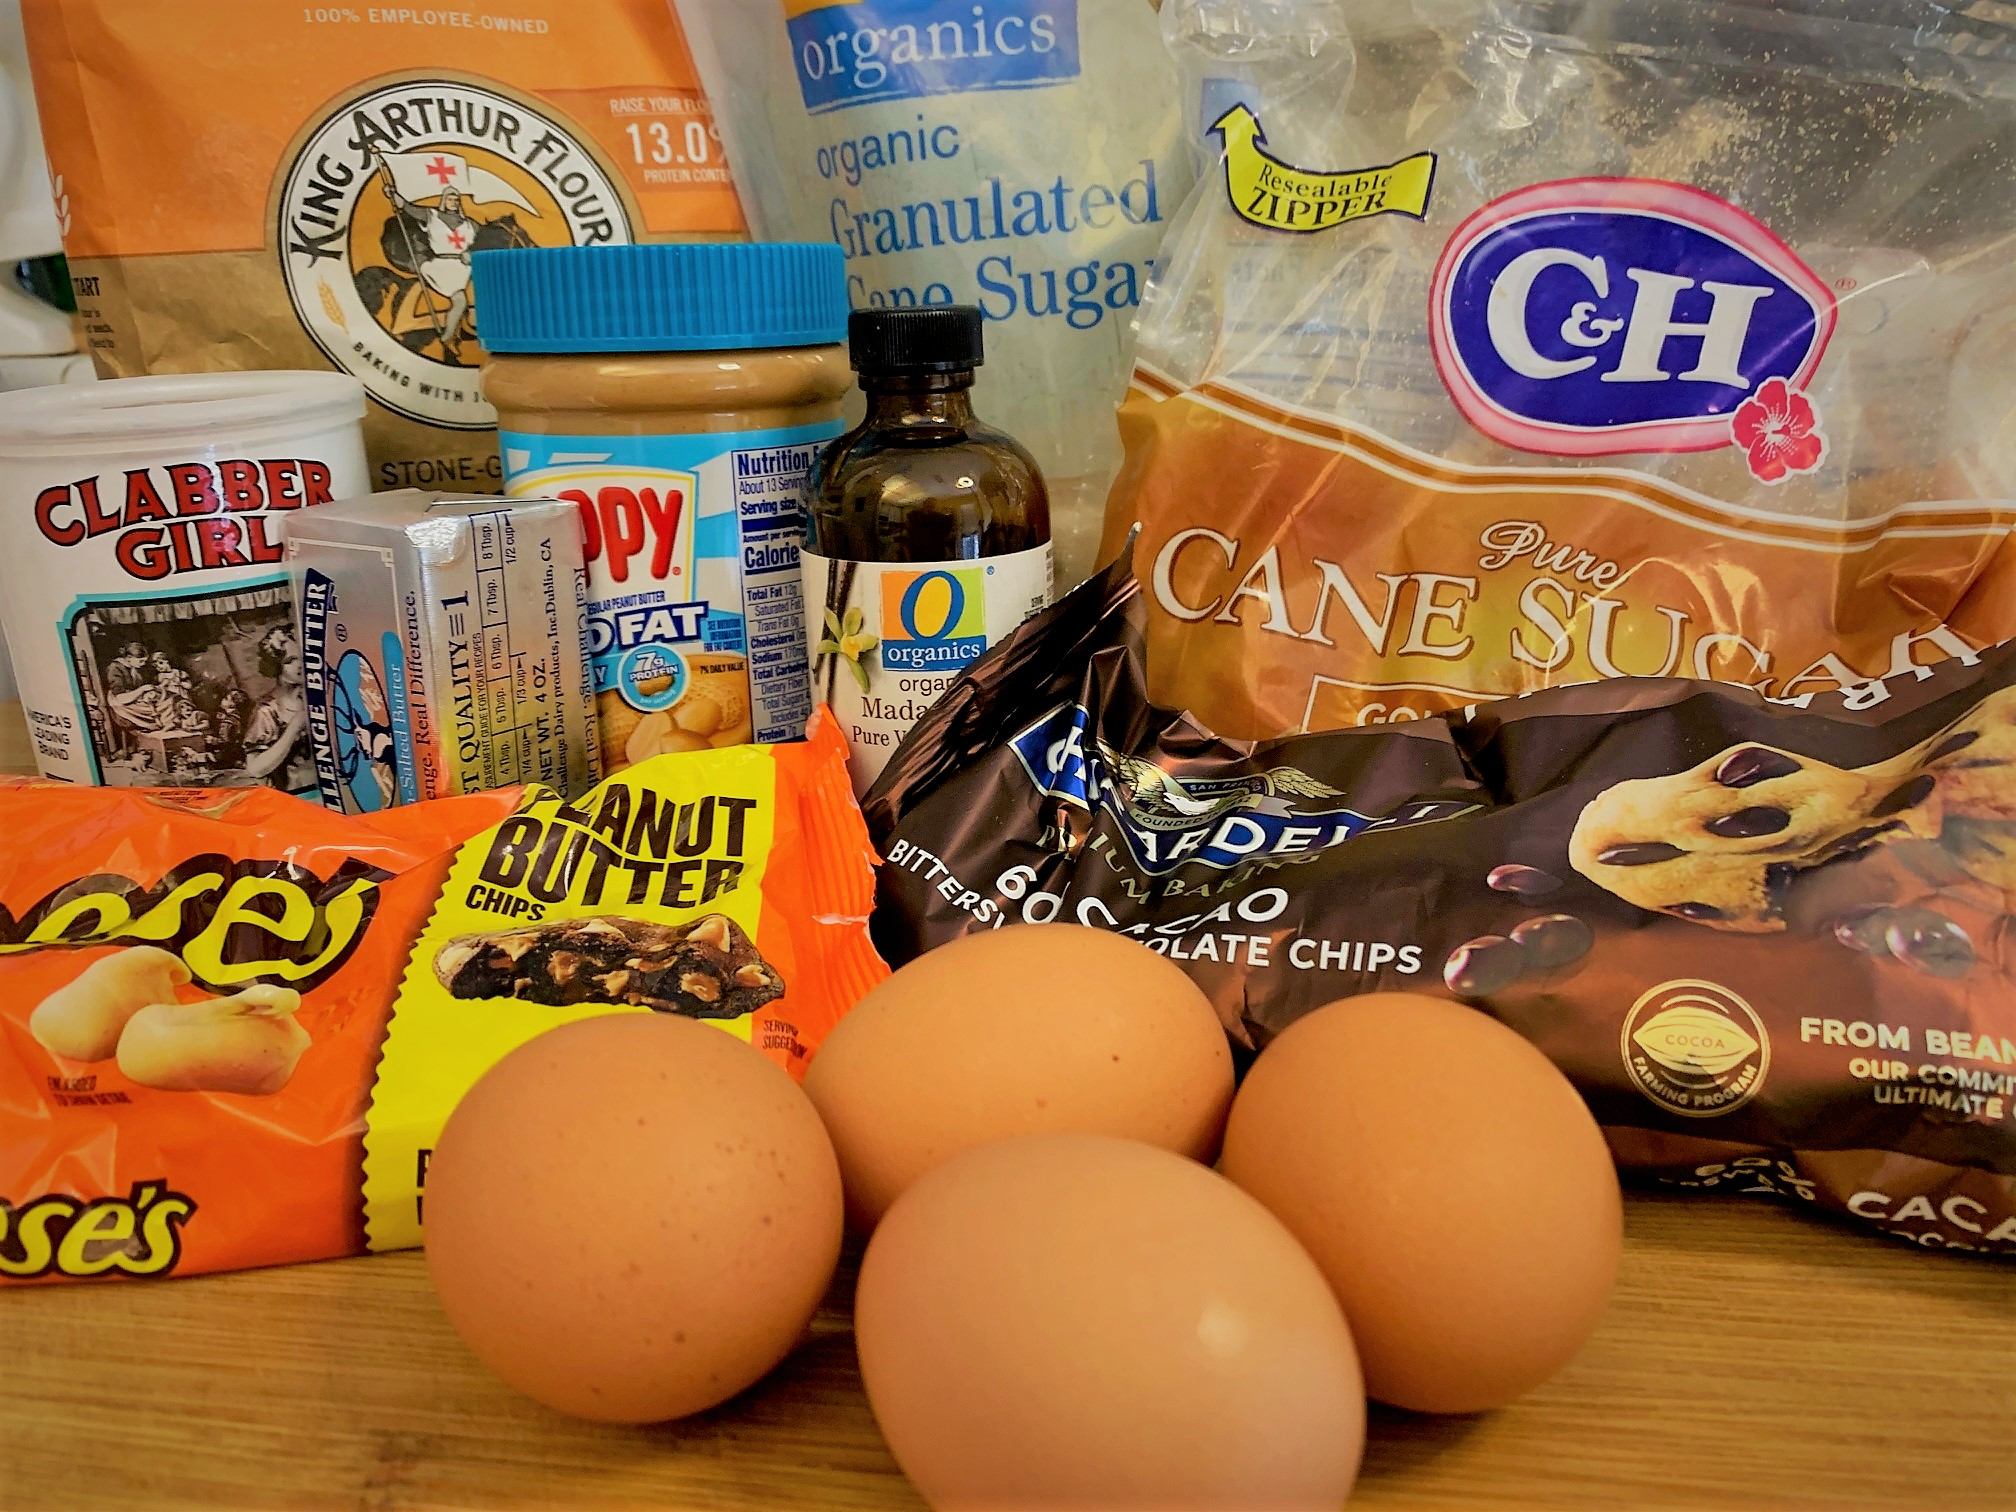 The ingredients for our Peanut Butter Cup Cake Bars